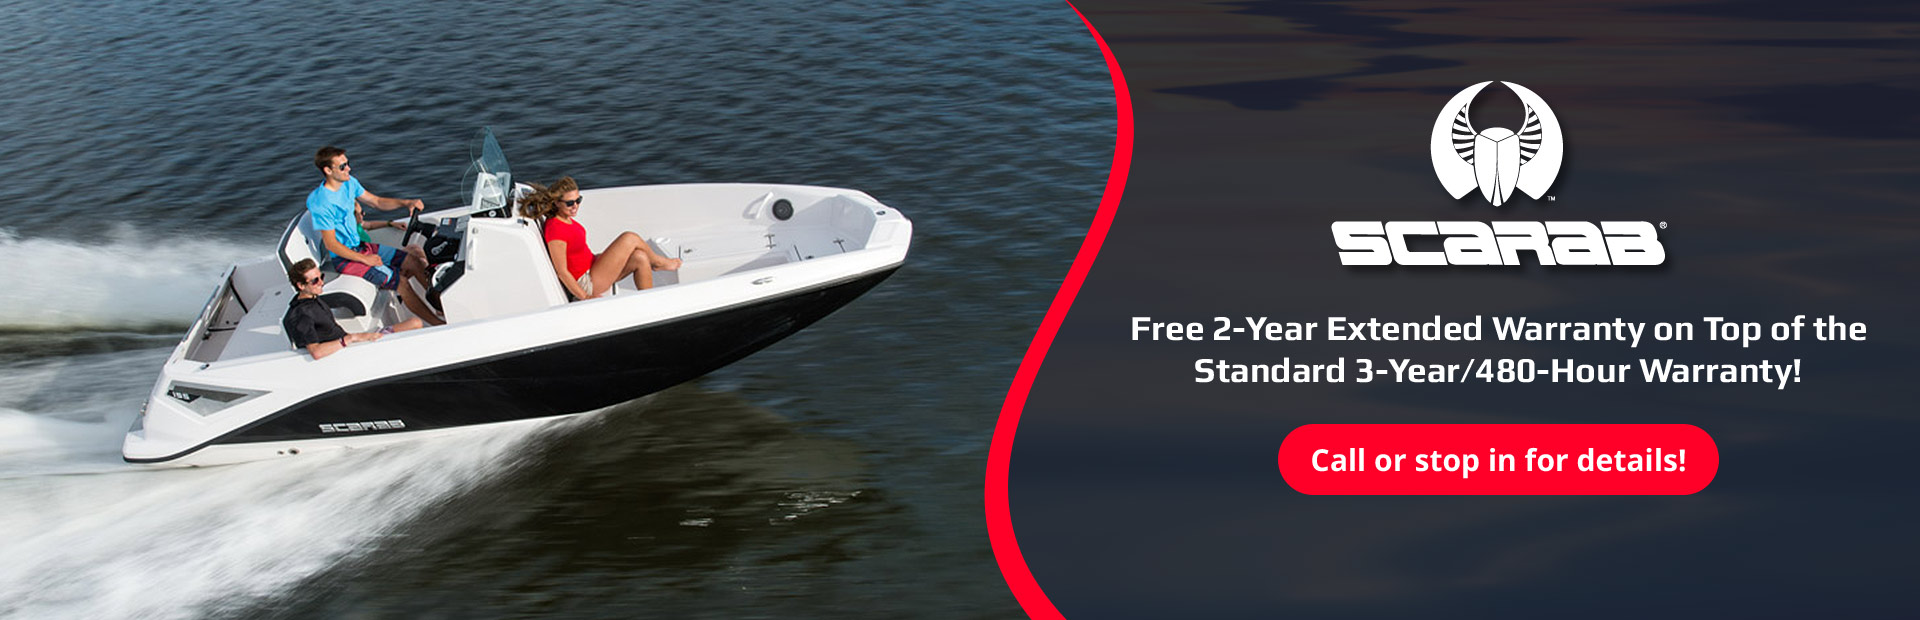 Scarab Extended Warranty Offer: Get a free 2-year extended warranty on top of the standard 3-year/480-hour warranty! Call or stop in for details!